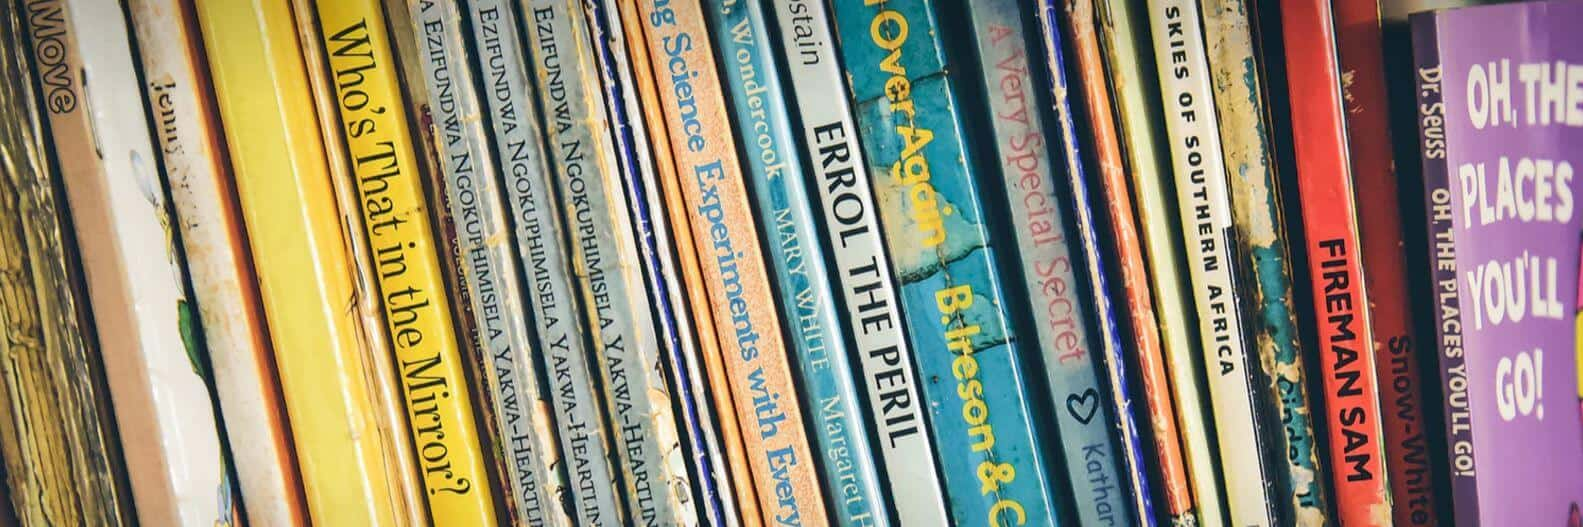 best books on writing research papers